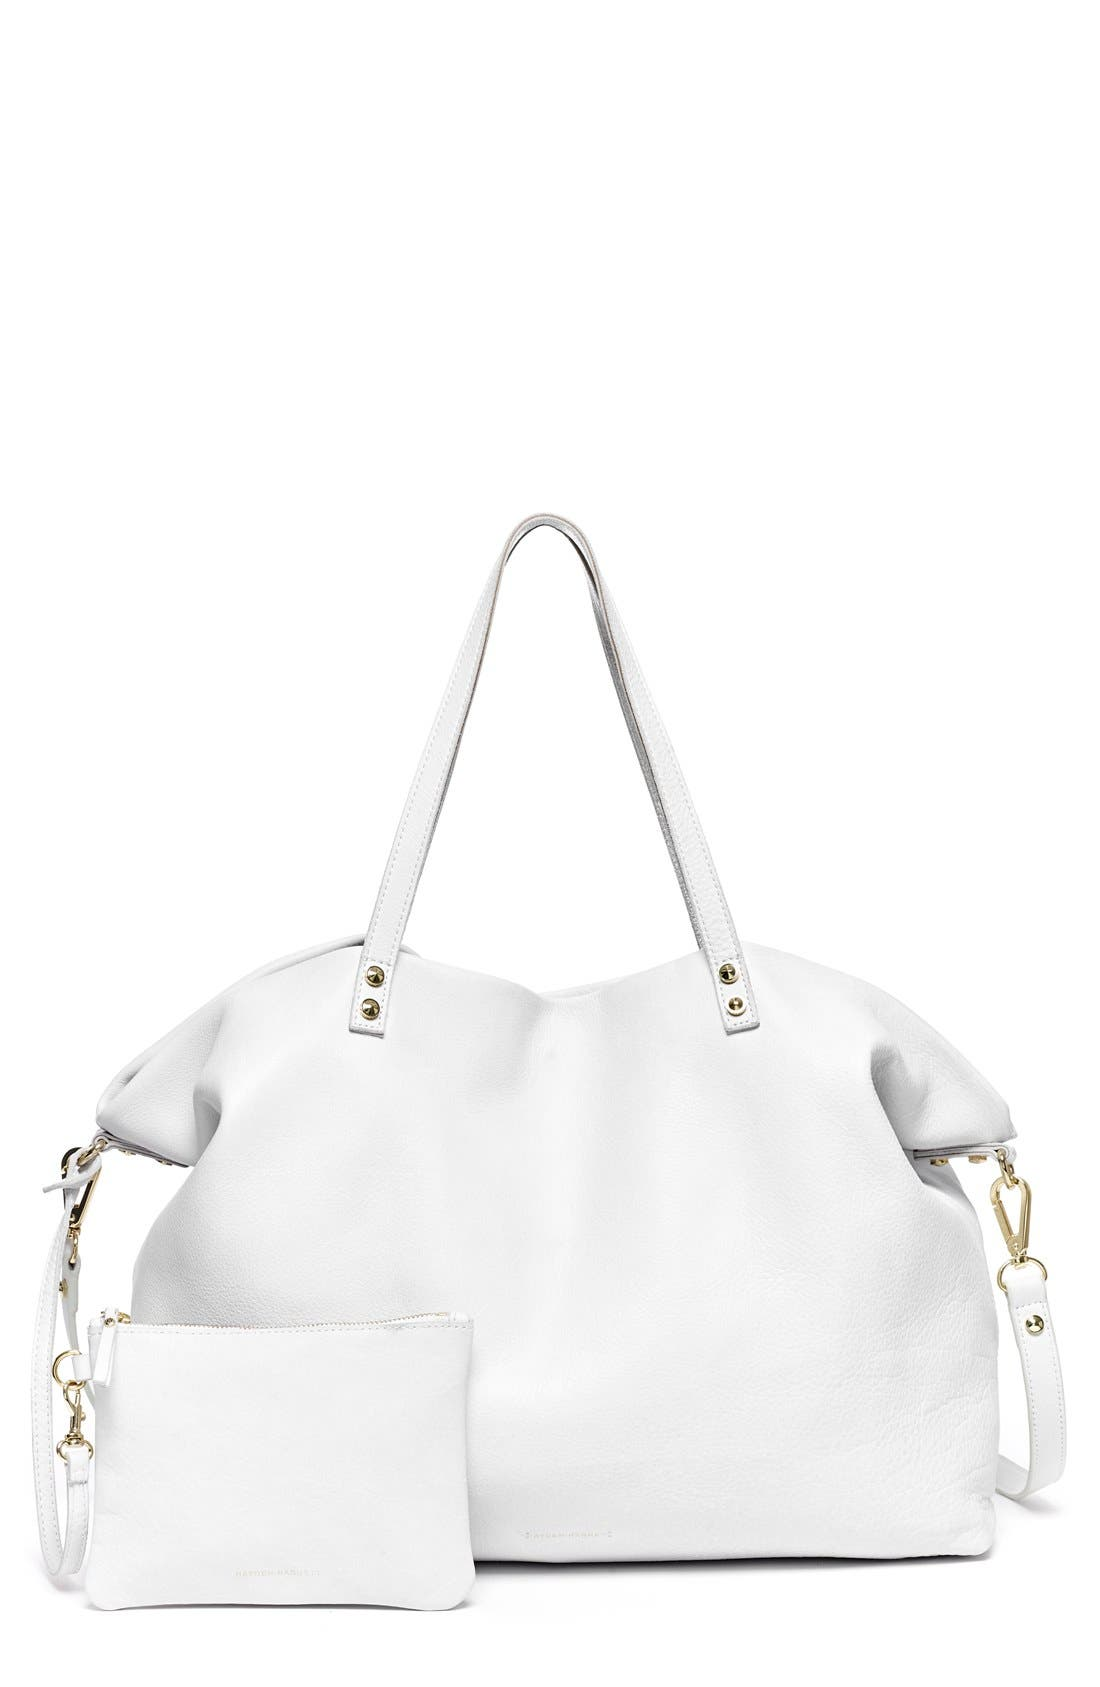 Alternate Image 1 Selected - Hayden-Harnett 'Two-Way' Reversible Leather Tote